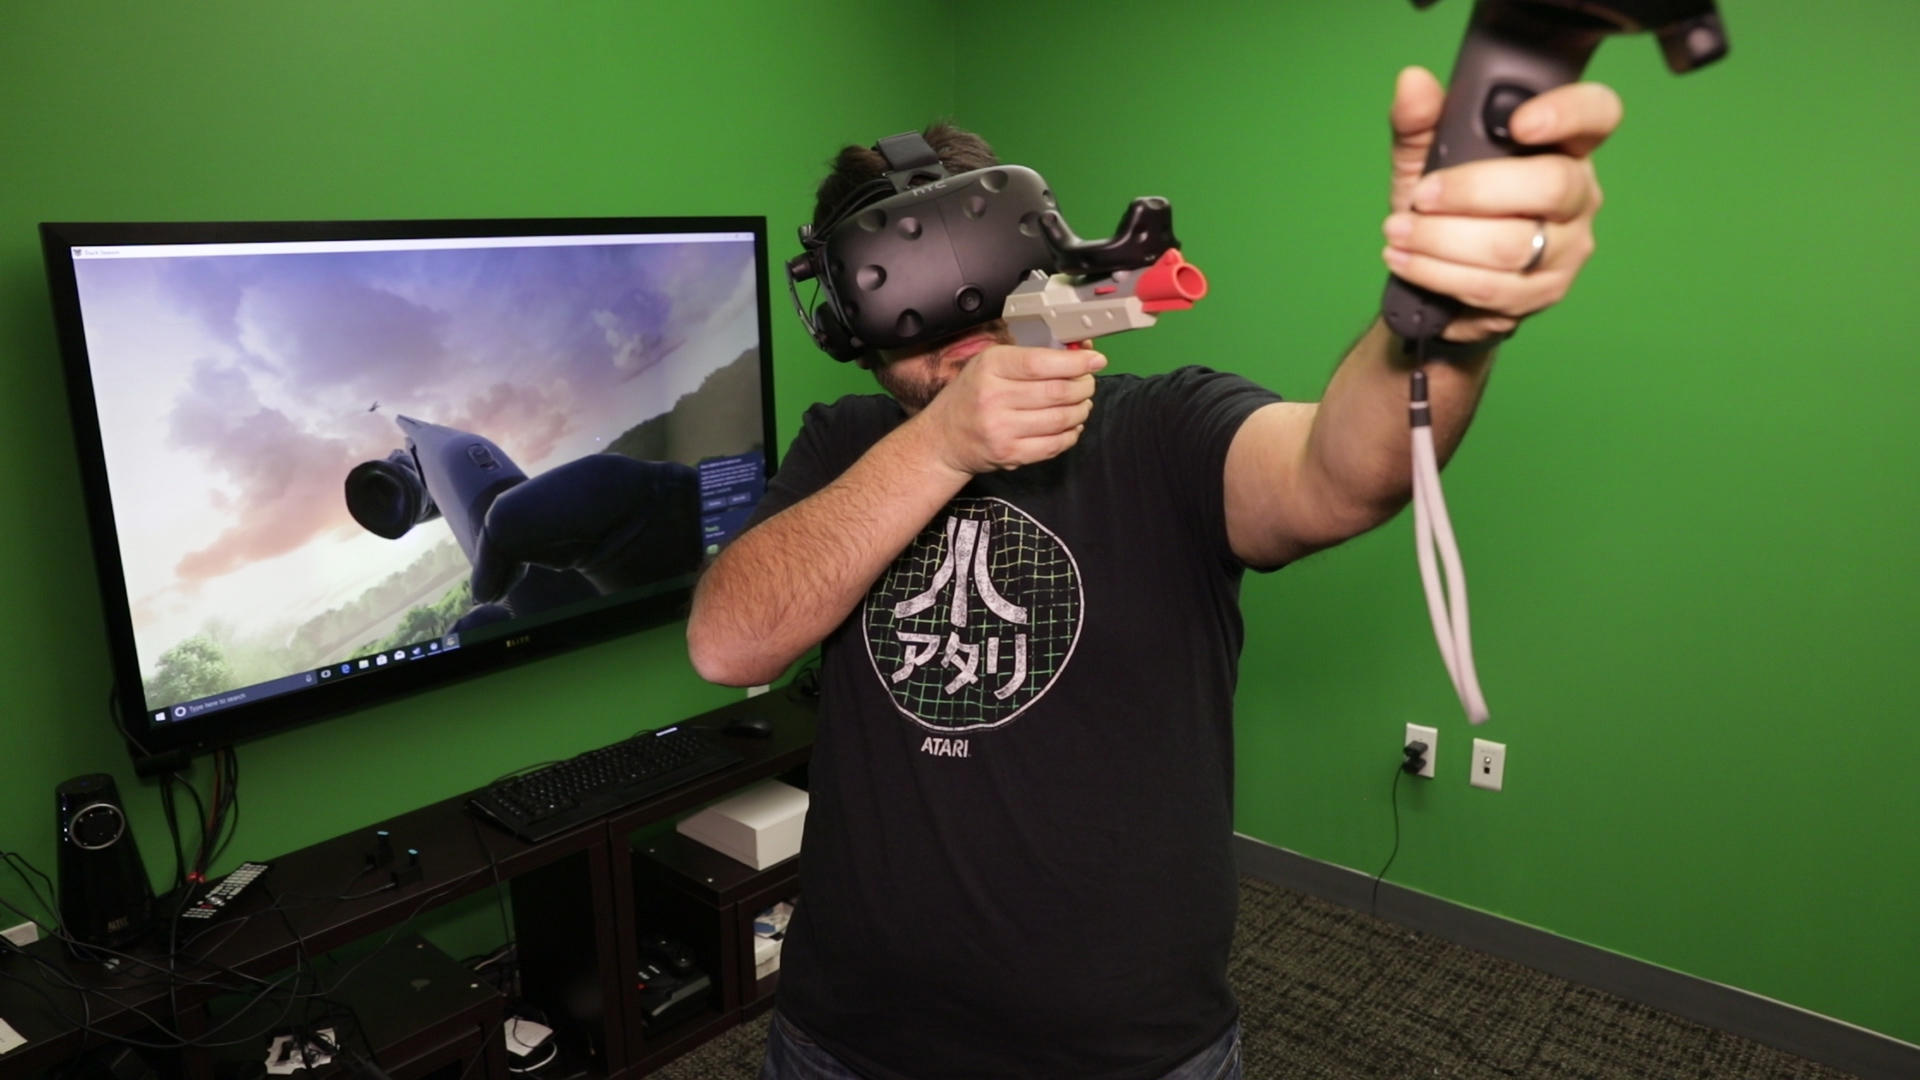 Video: HTC's Vive Tracker adds lots of accessories to your VR games